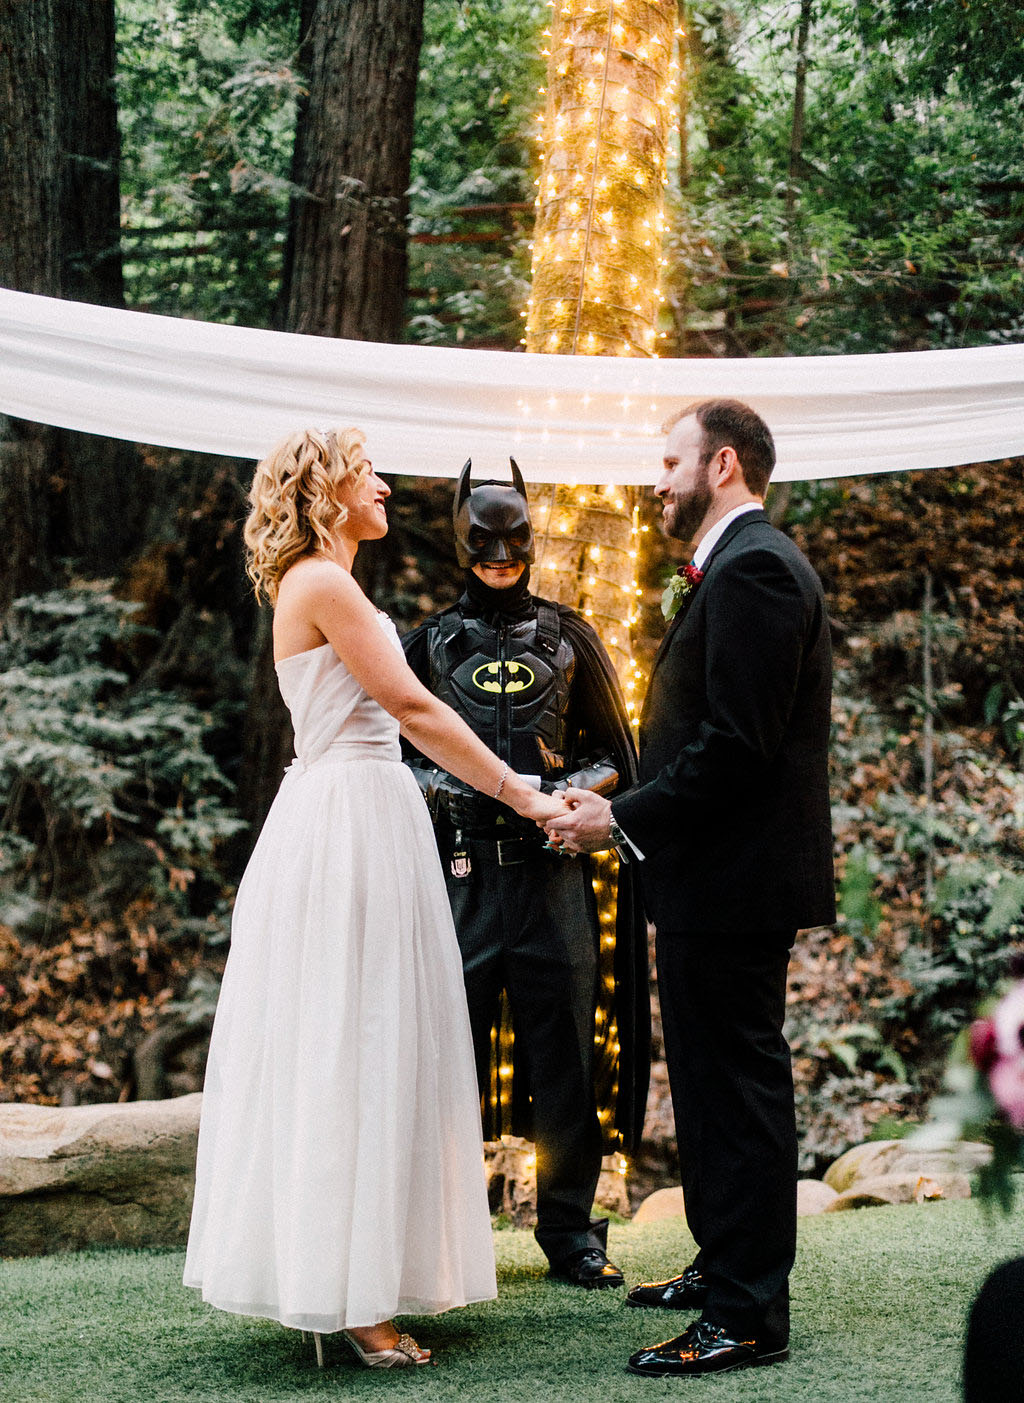 Wedding-Officiated-by-Batman-5.jpg